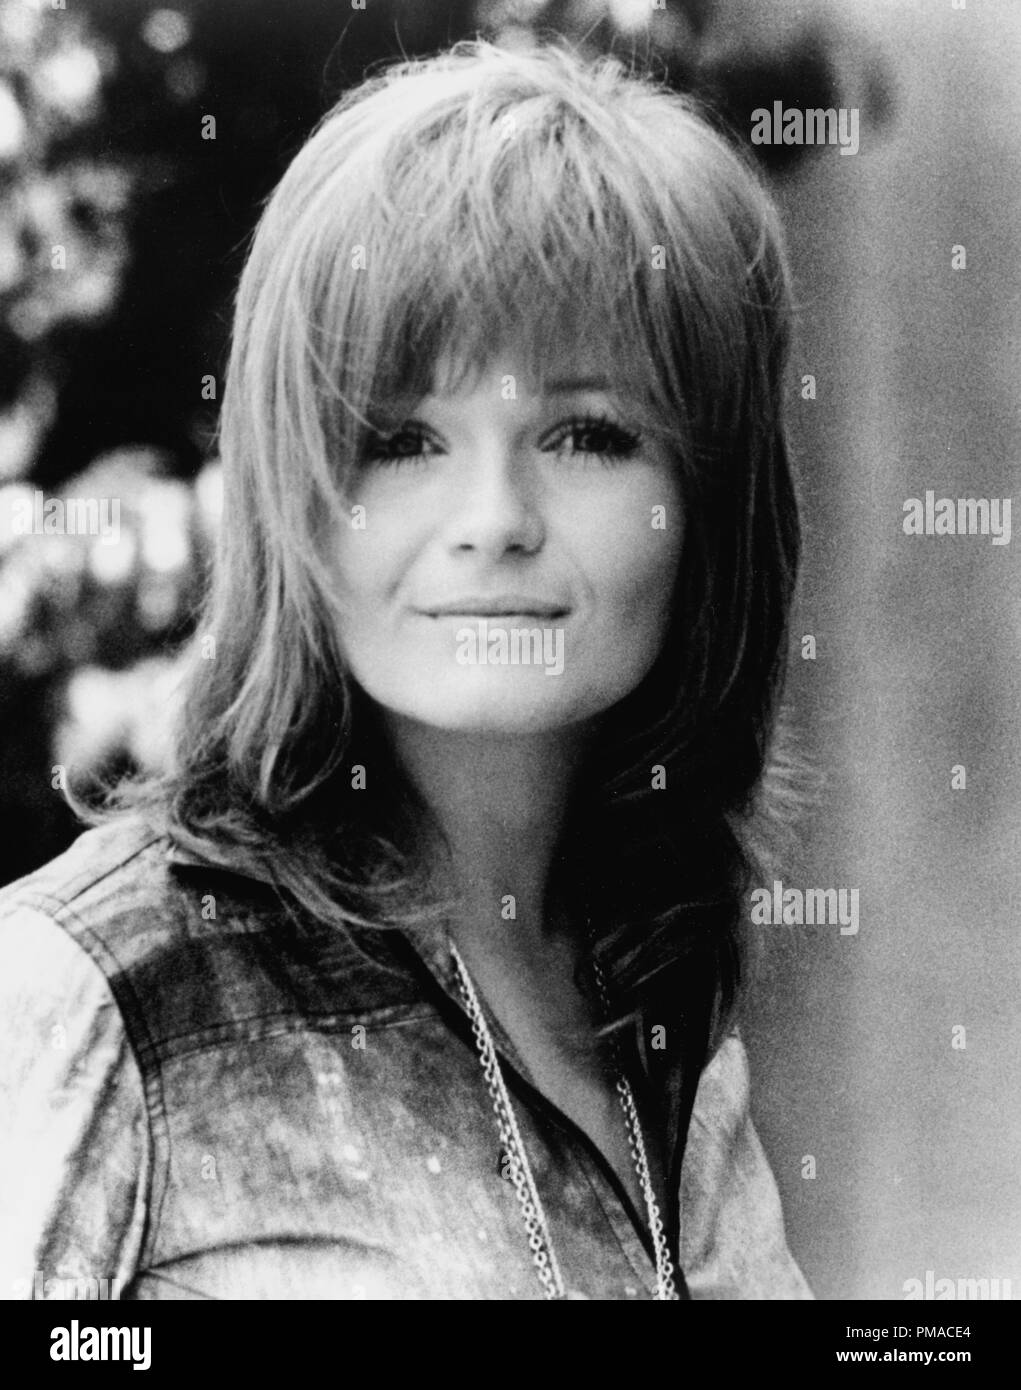 Valerie Perrine High Resolution Stock Photography and